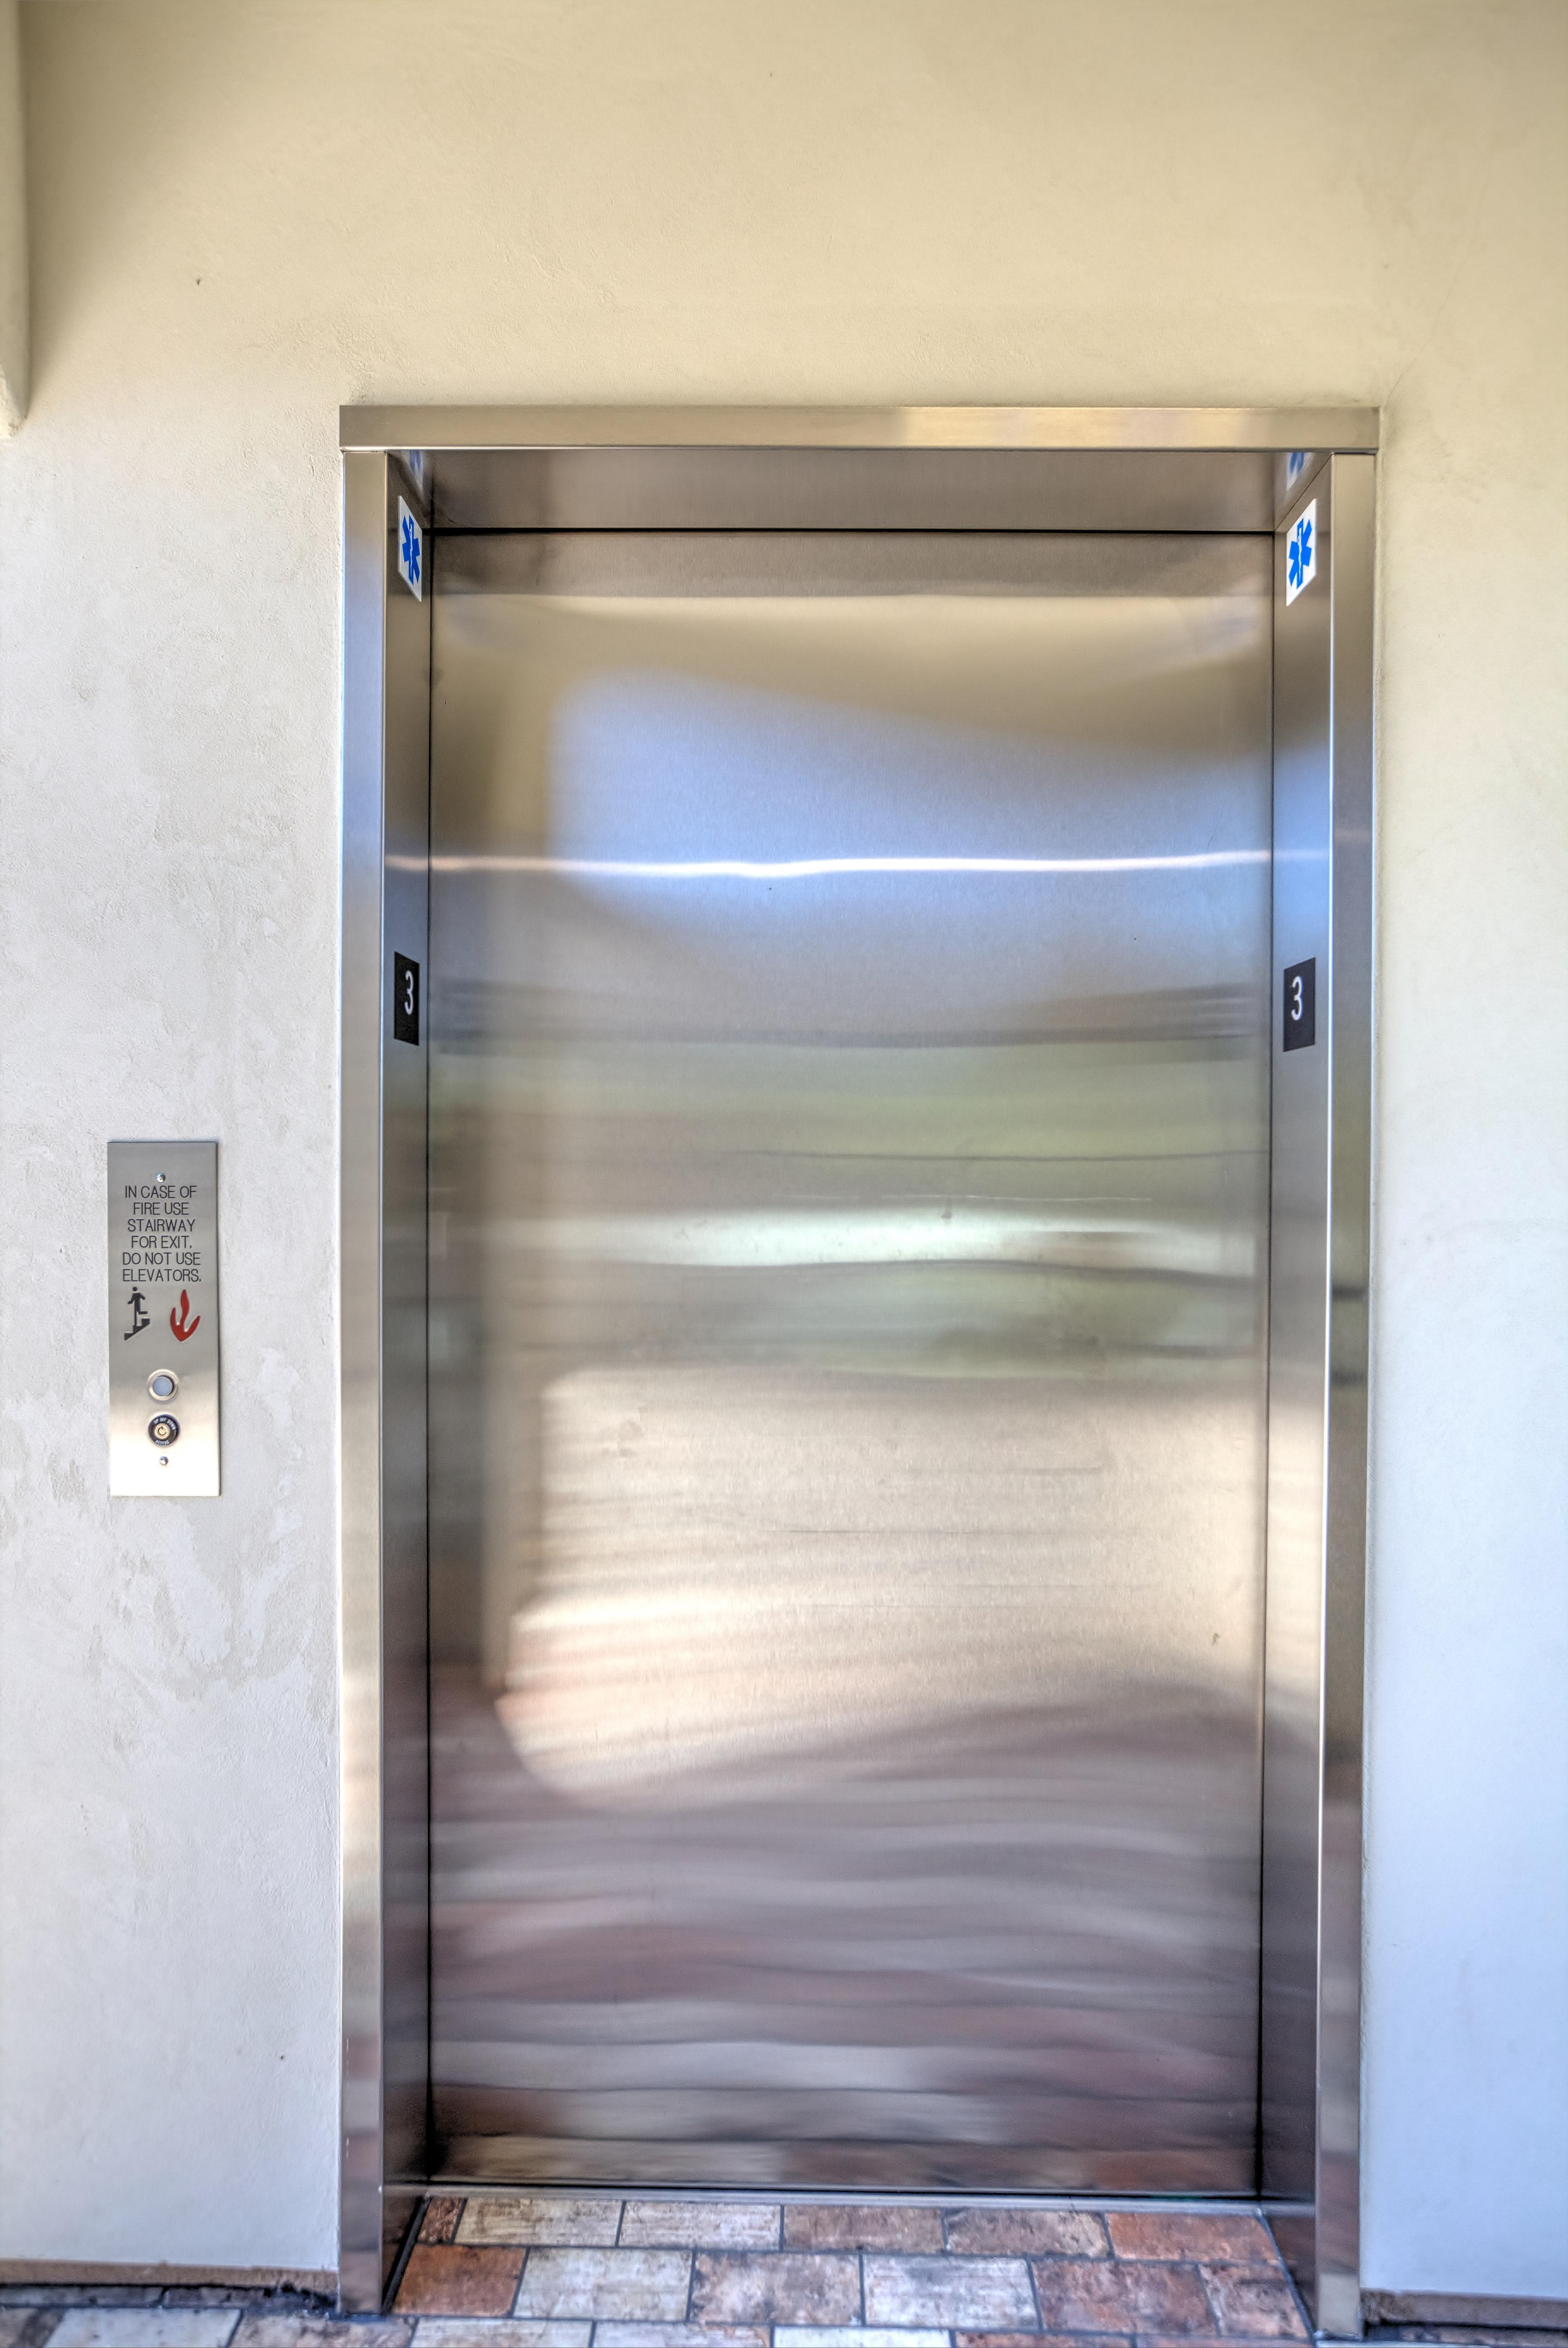 No need to tote luggage up the stairwell from the garage. Hitch a ride on the elevator. Traveling with a guest with limited mobility? It's nice to have the elevator and save those steps.